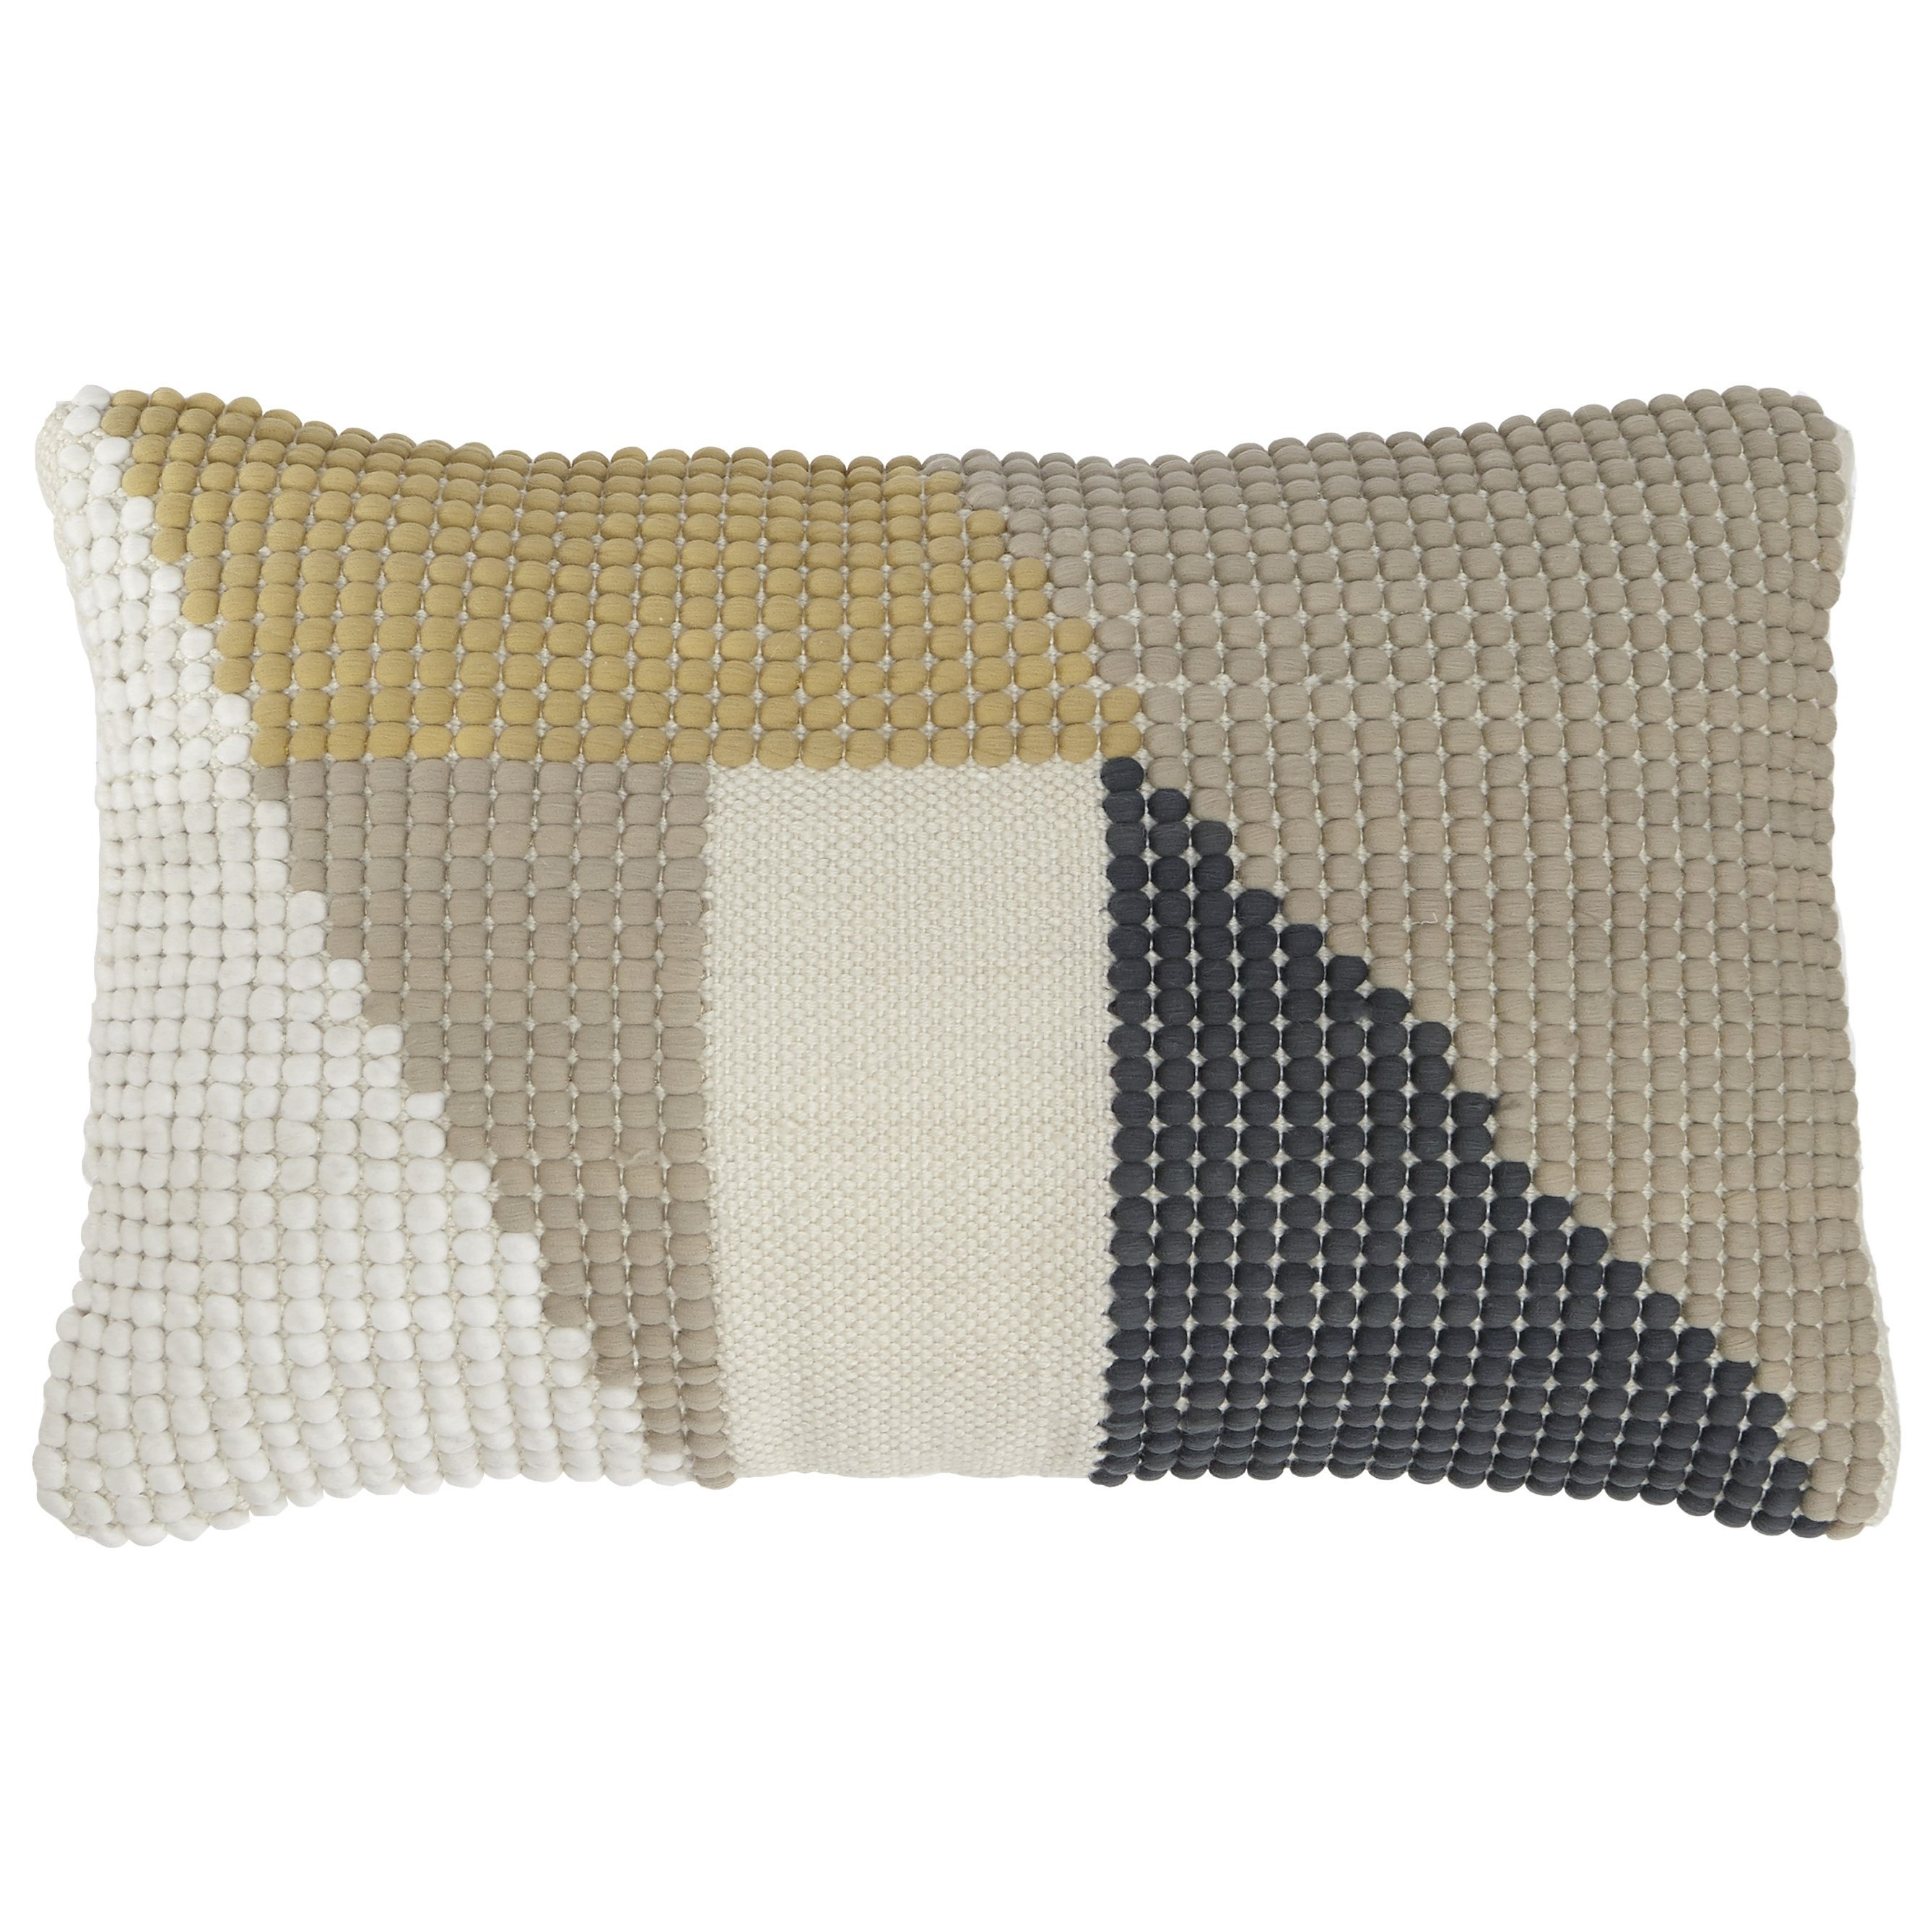 Signature Design by Ashley Pillows Shawn Multicolor Pillow - Item Number: A1000822P